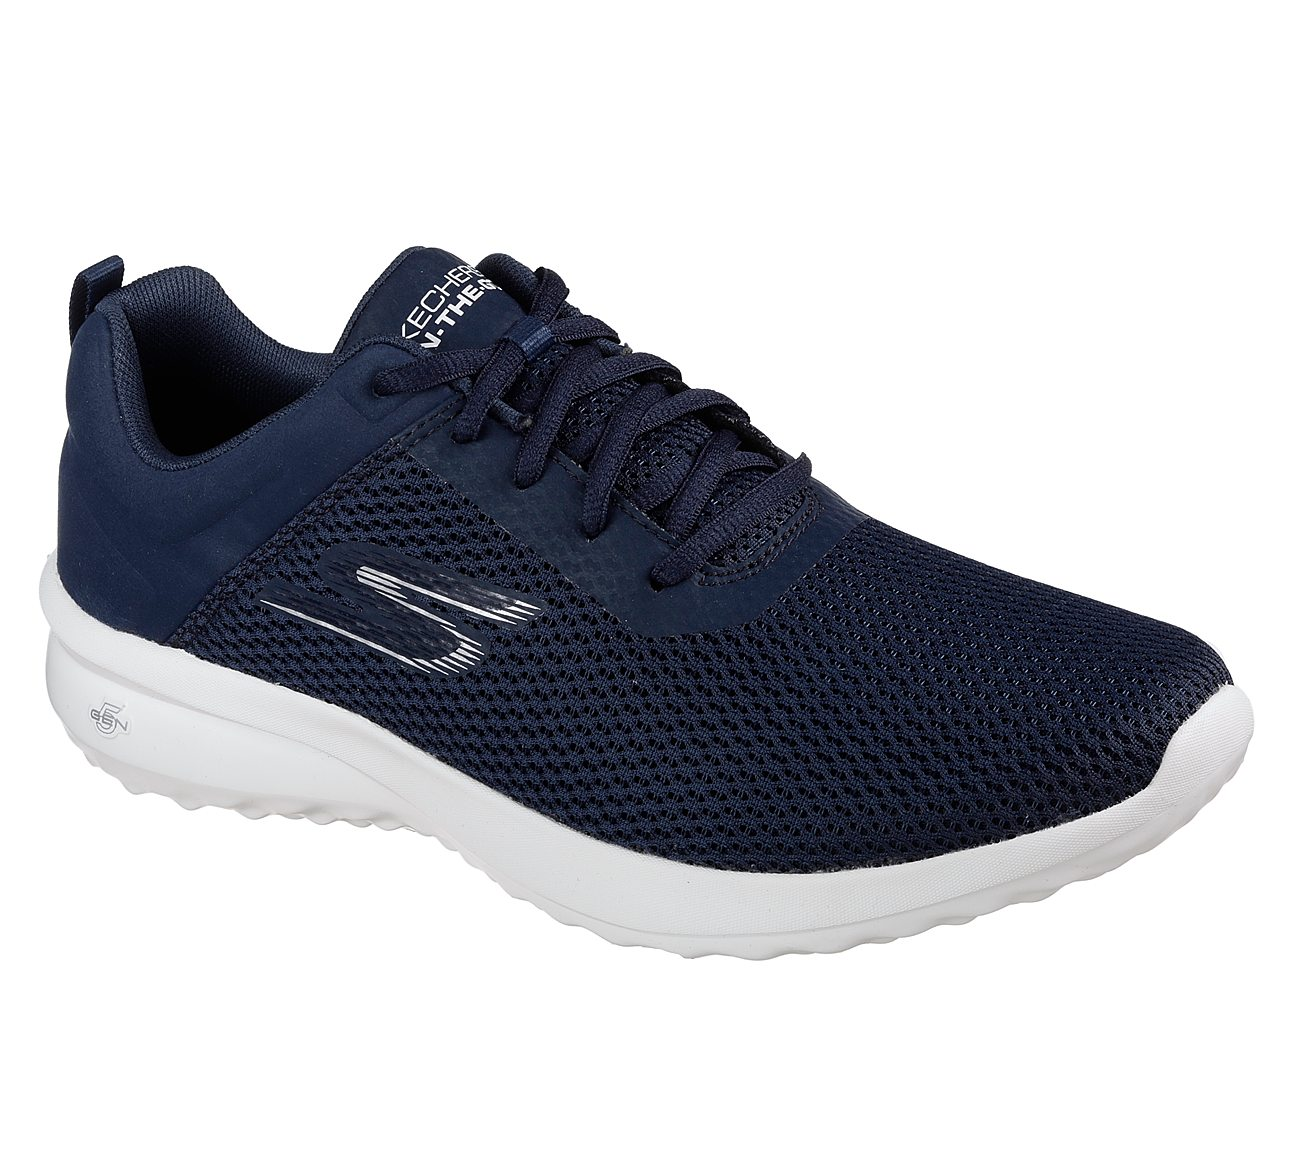 SKECHERS PerformanceOn-The-Go City 3.0 - Dynamics xP3a3yvw